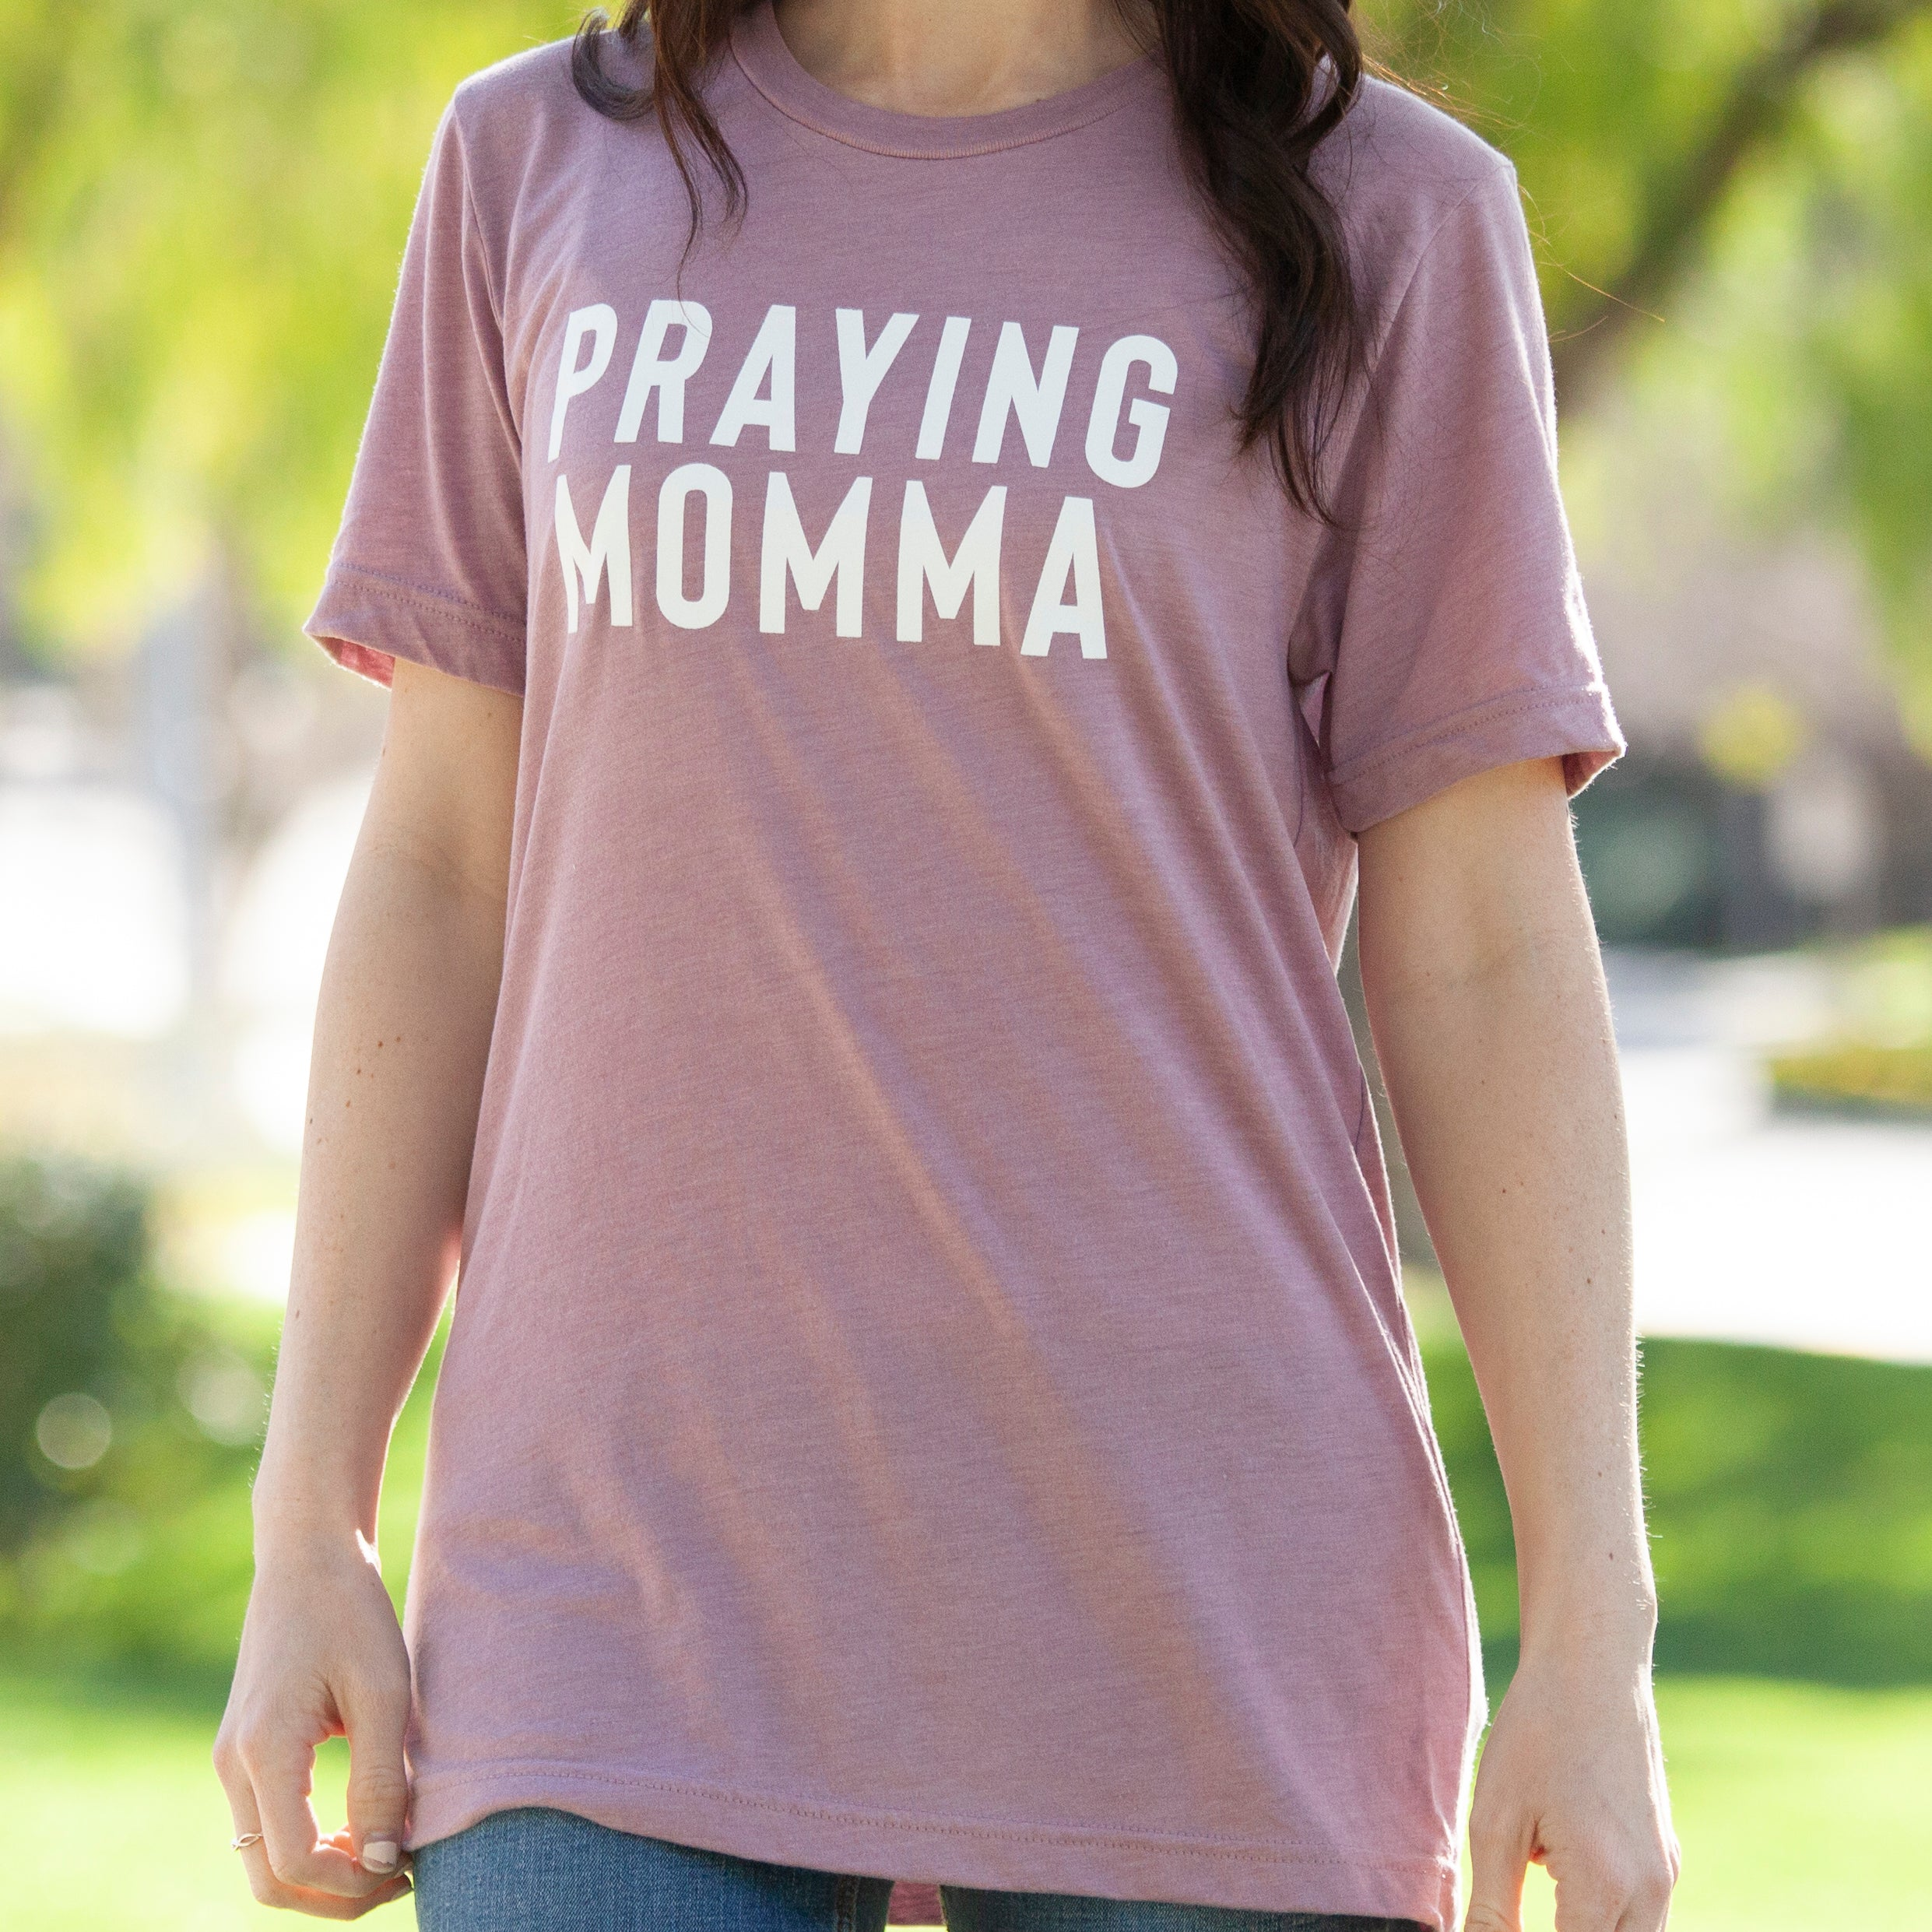 (PRE-ORDER) Praying Momma® T-Shirt | Orchid